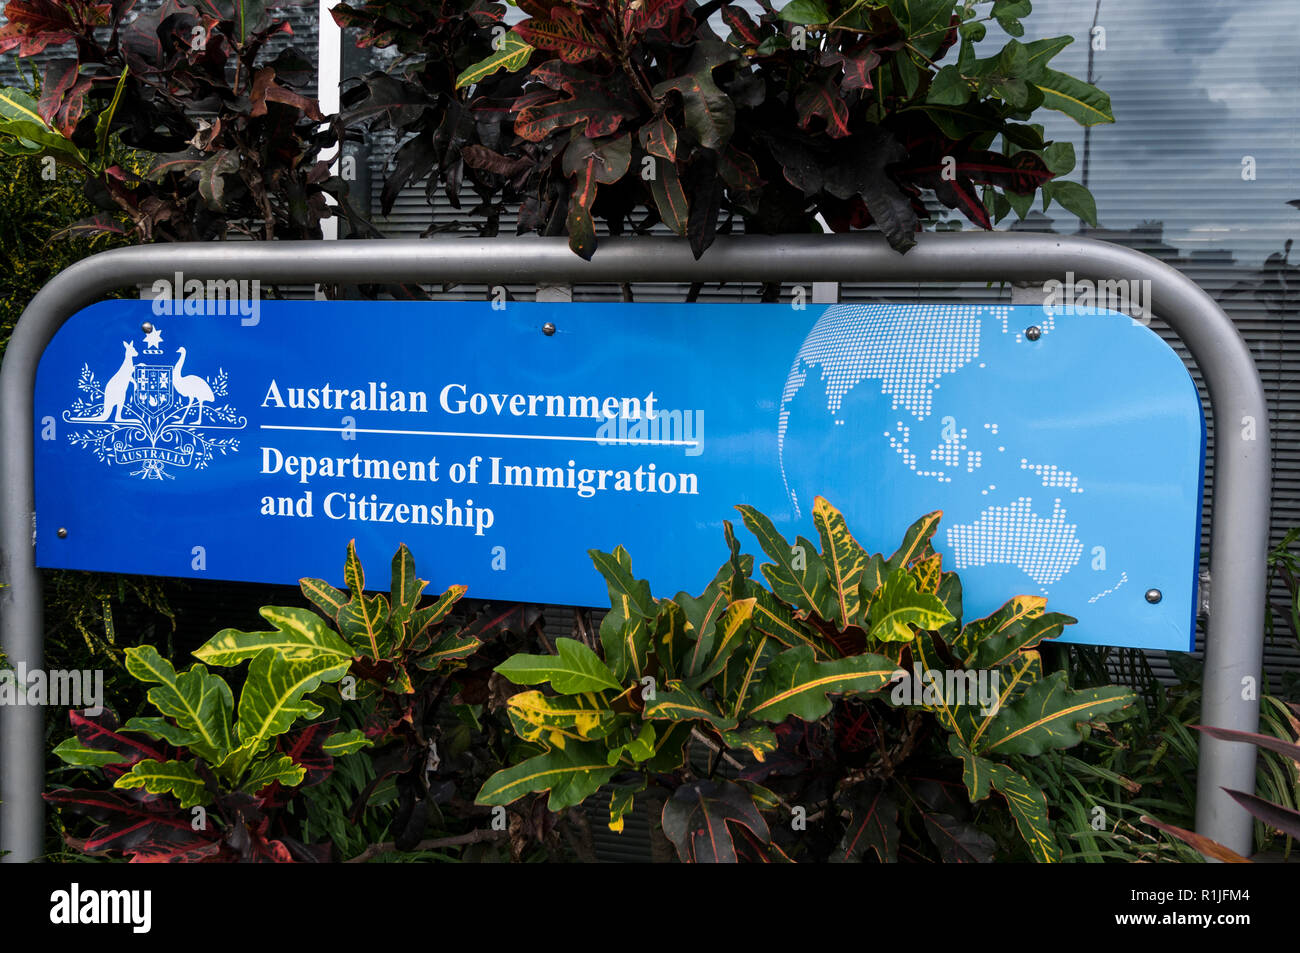 Australian Government Immigration Department and Citizenship  in Darwin, Australia - Stock Image